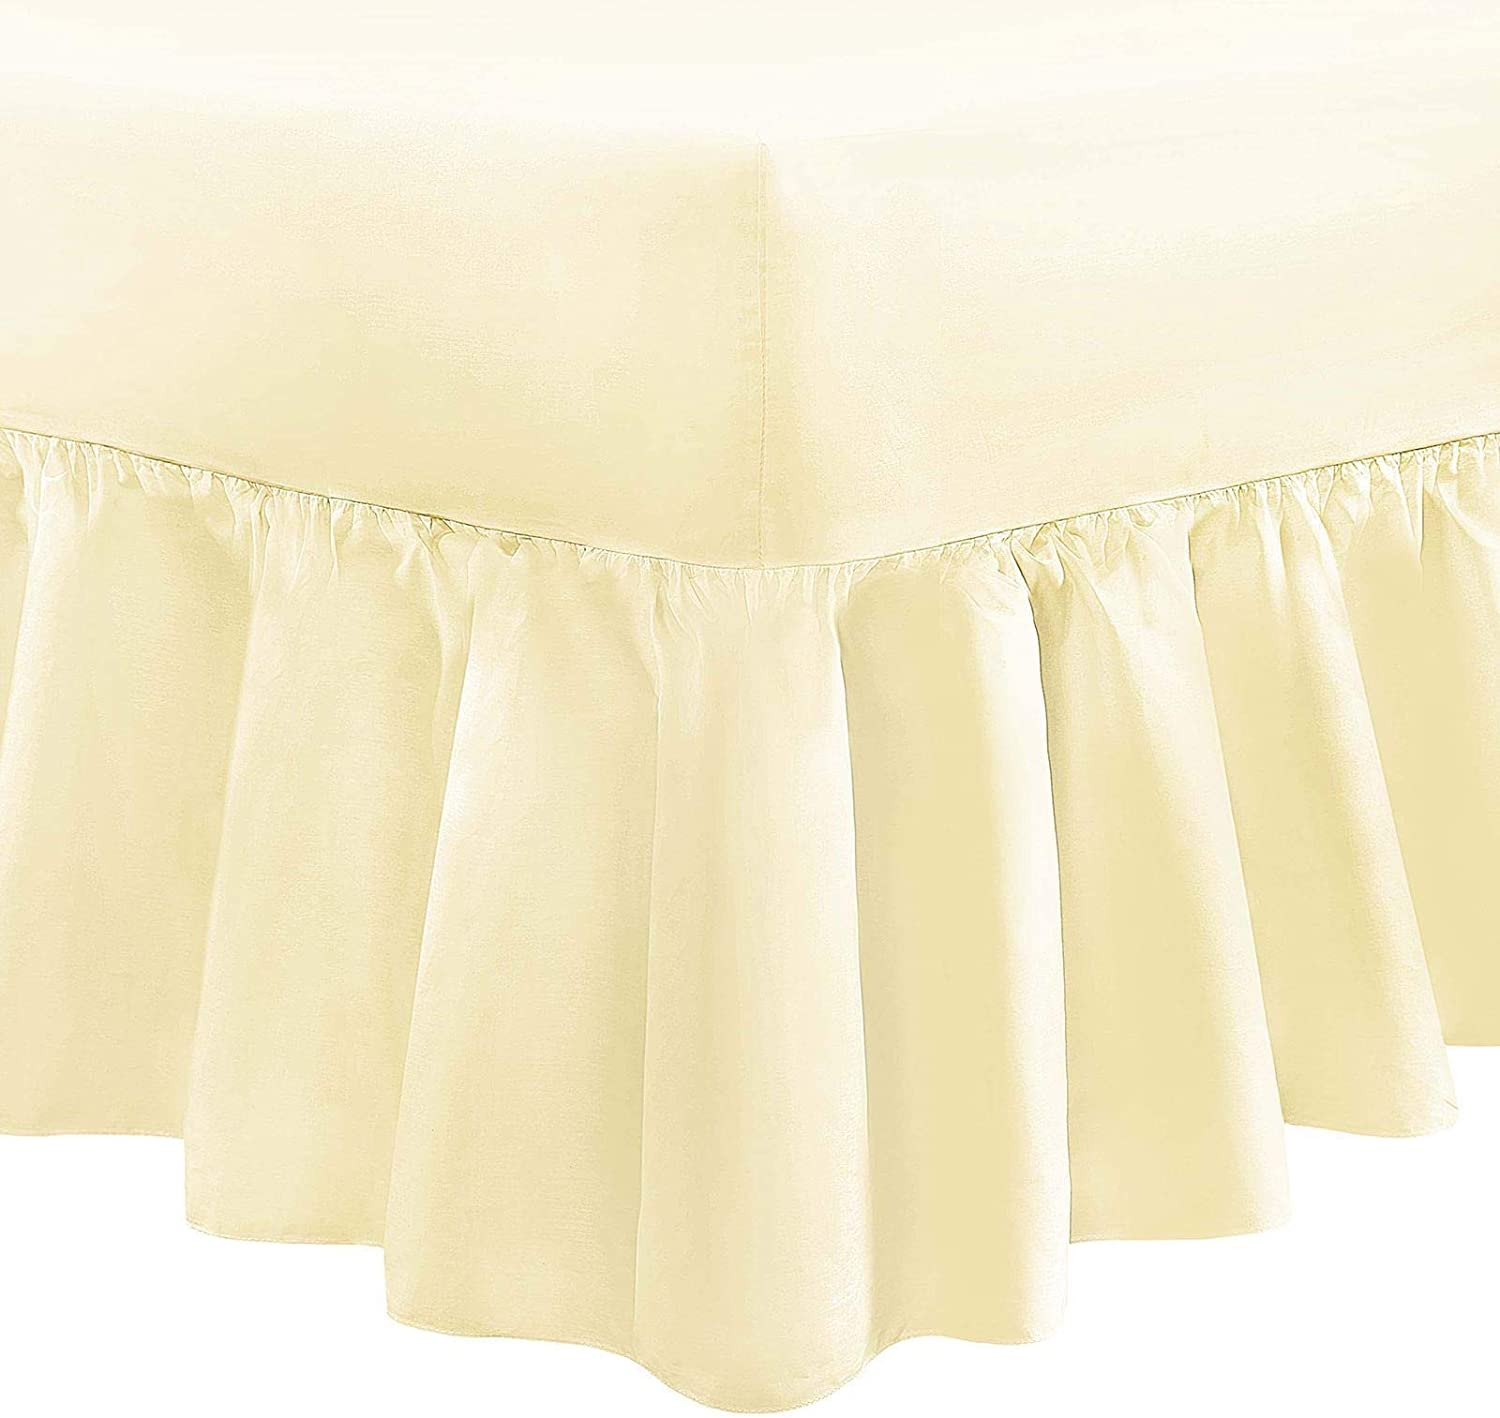 400 THREAD COUNT 100/% EGYPTIAN COTTON EXTRA DEEP FRILLED FITTED VALANCE SHEETS